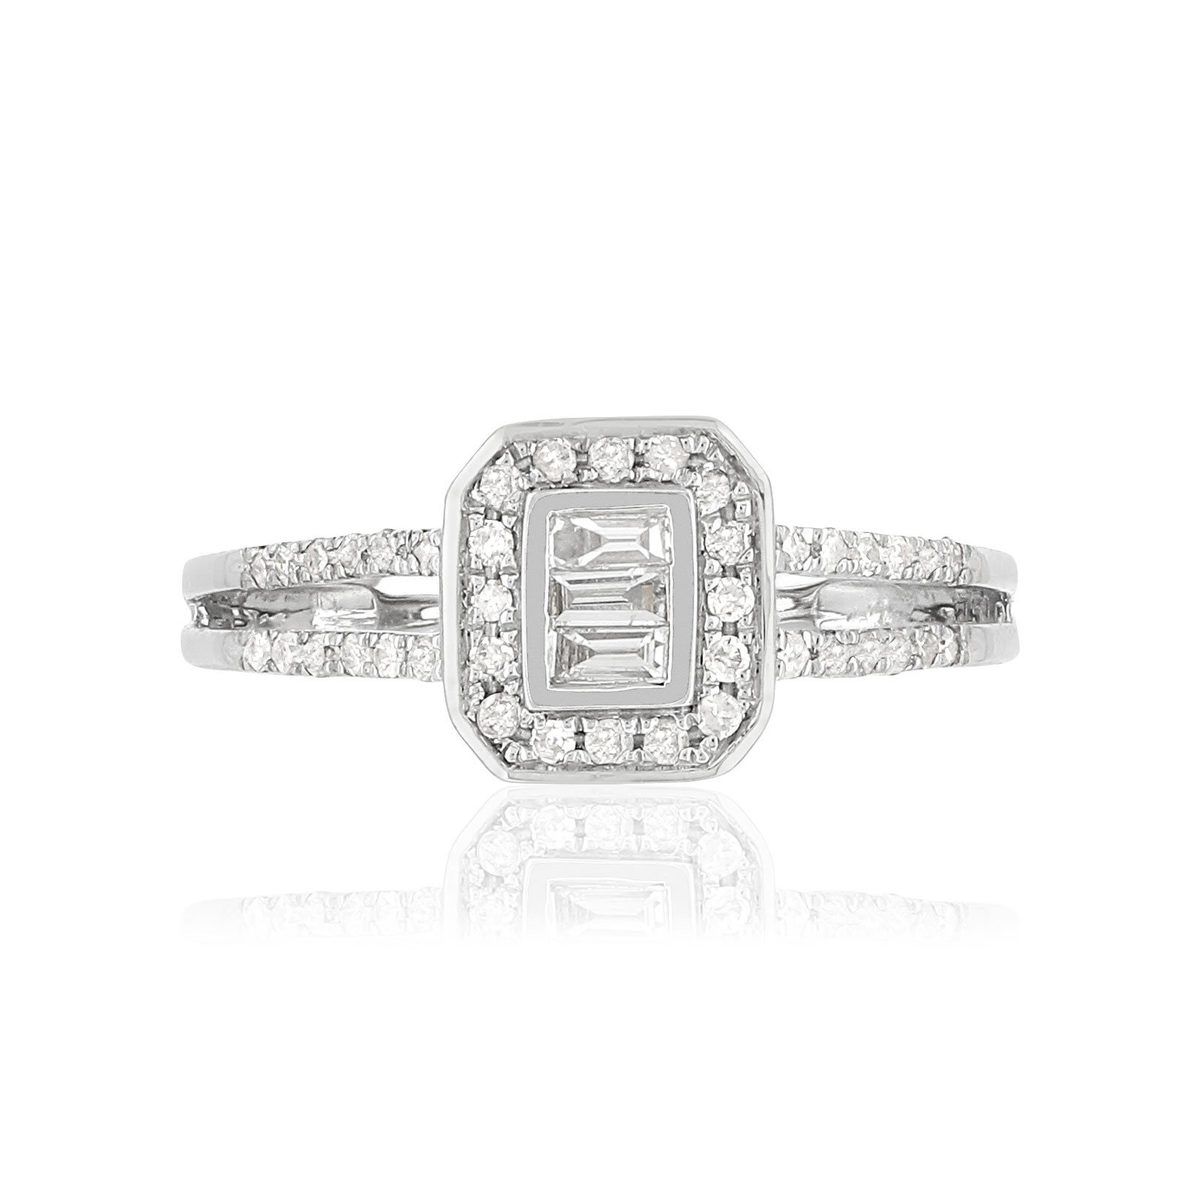 Bague MATY Or 750 blanc Diamants - vue 3